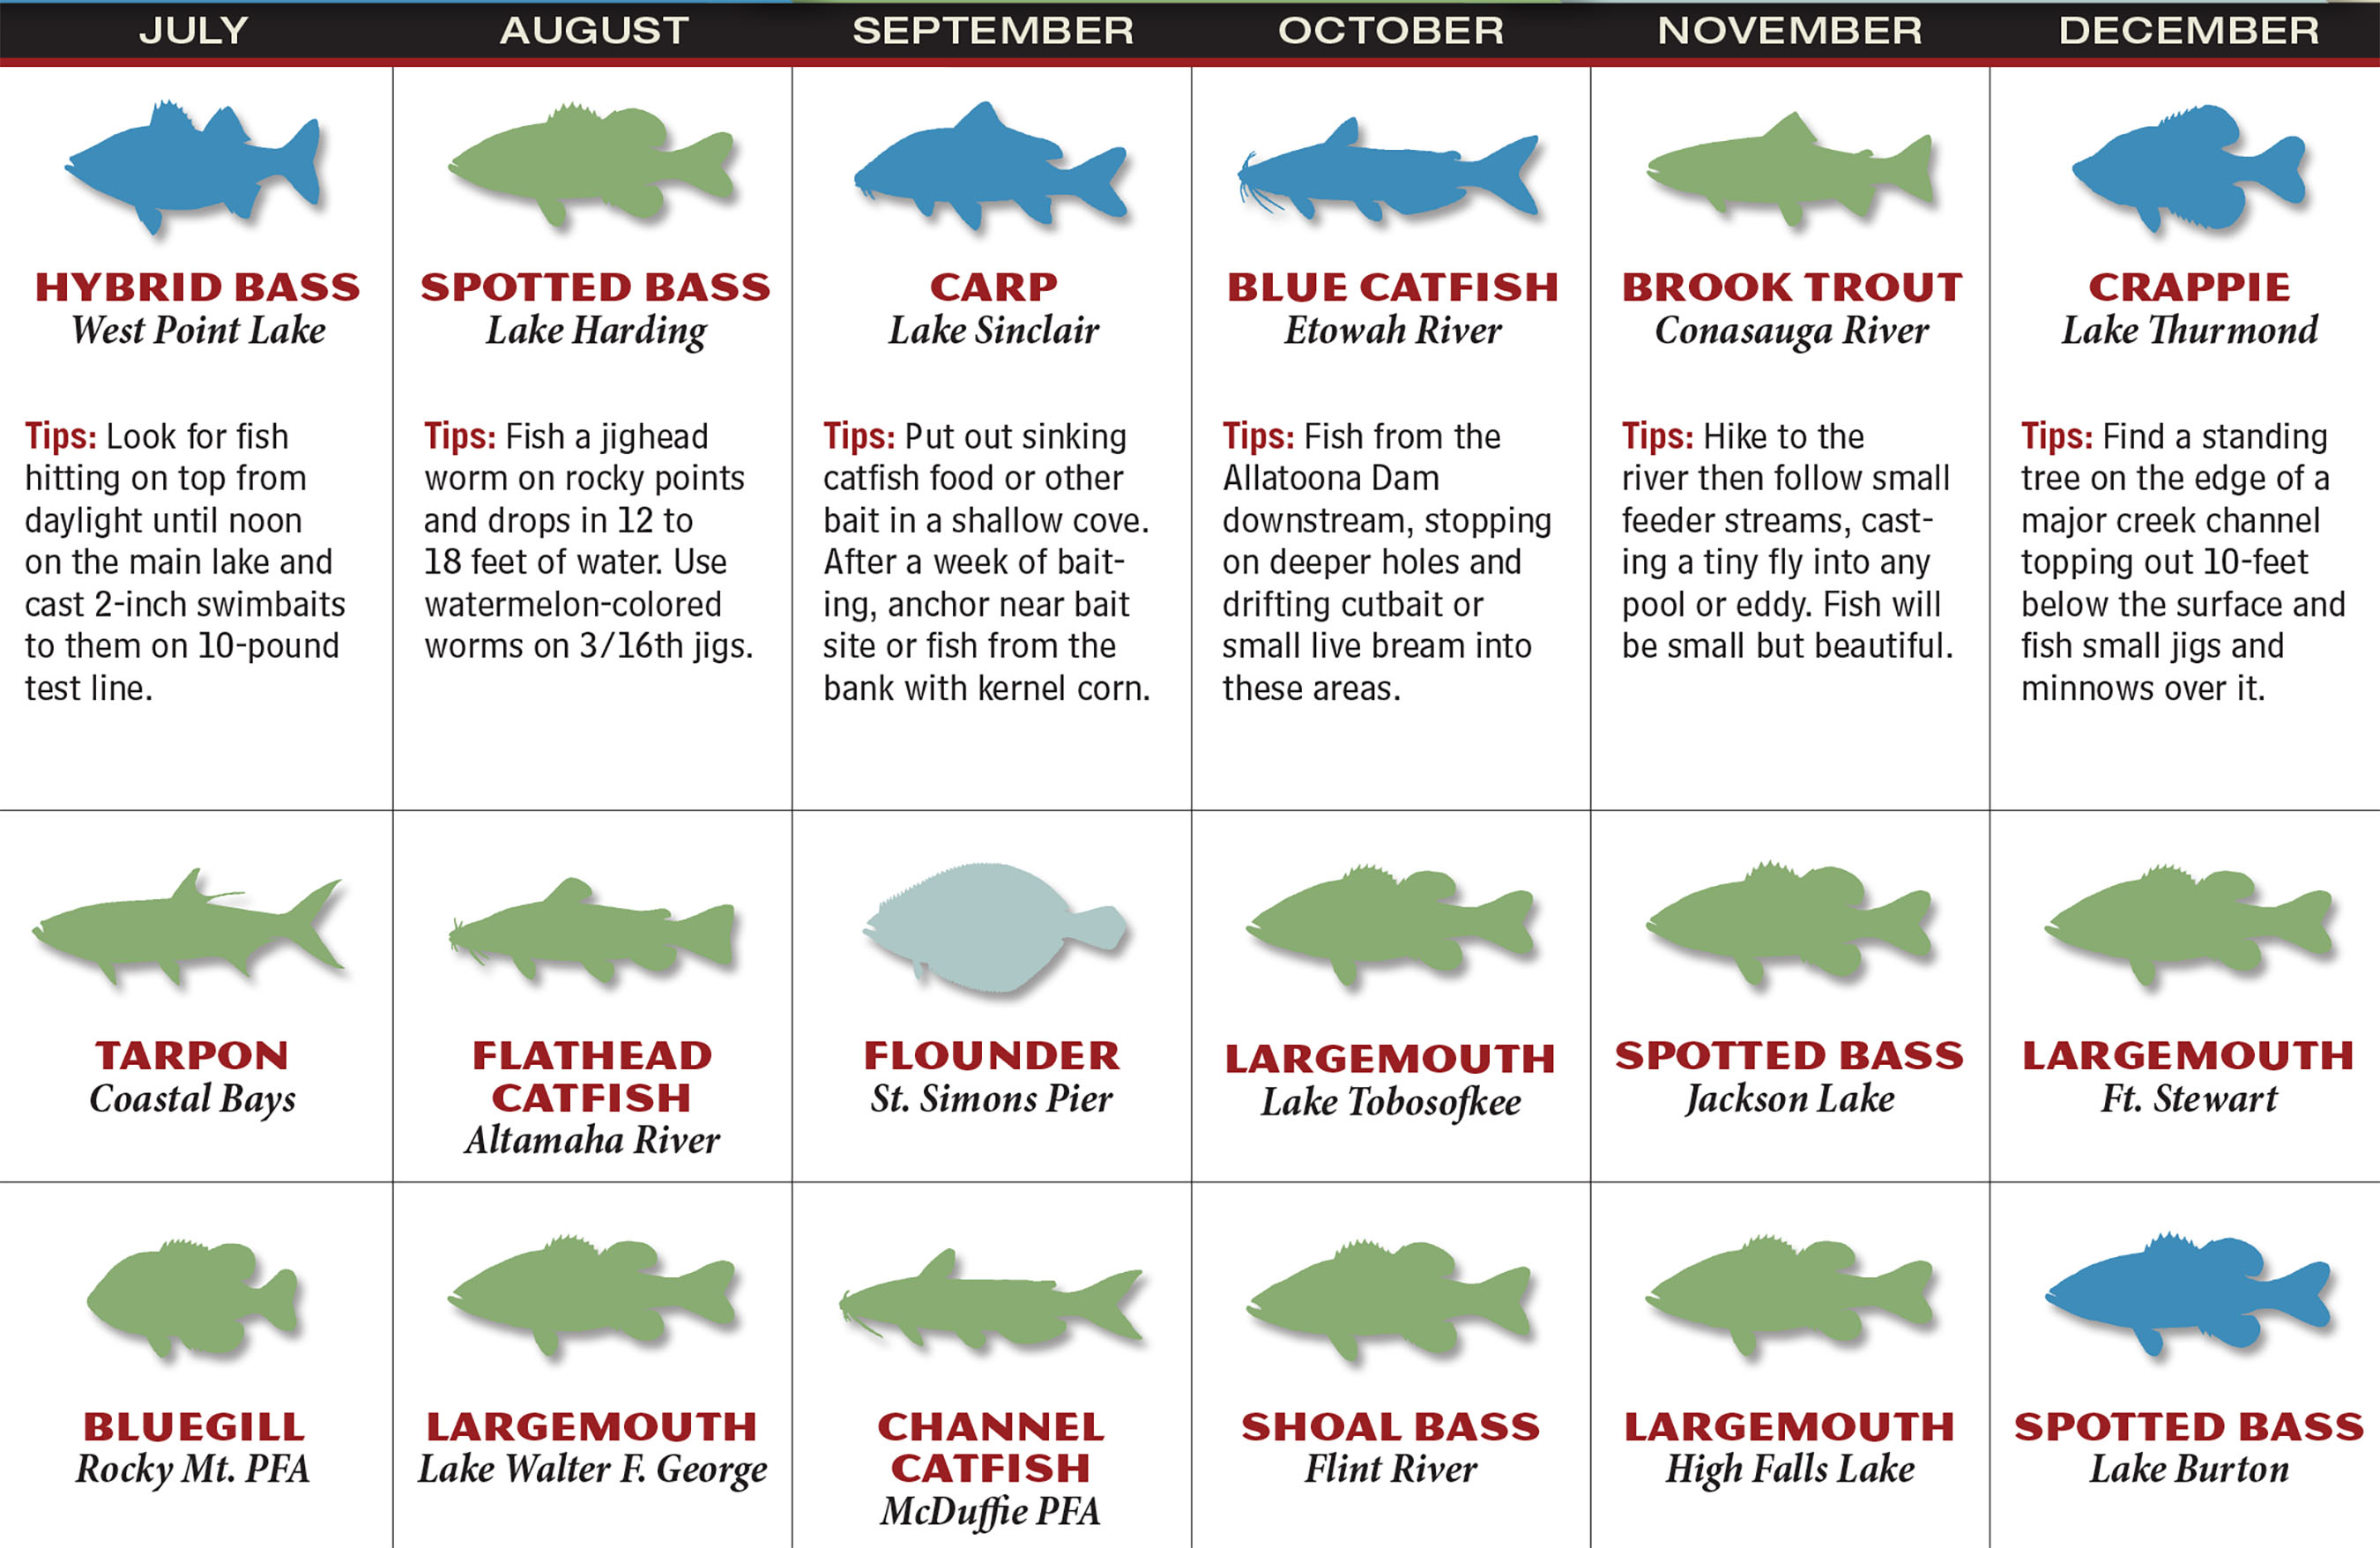 GA Fishing Forecast Calendar P2